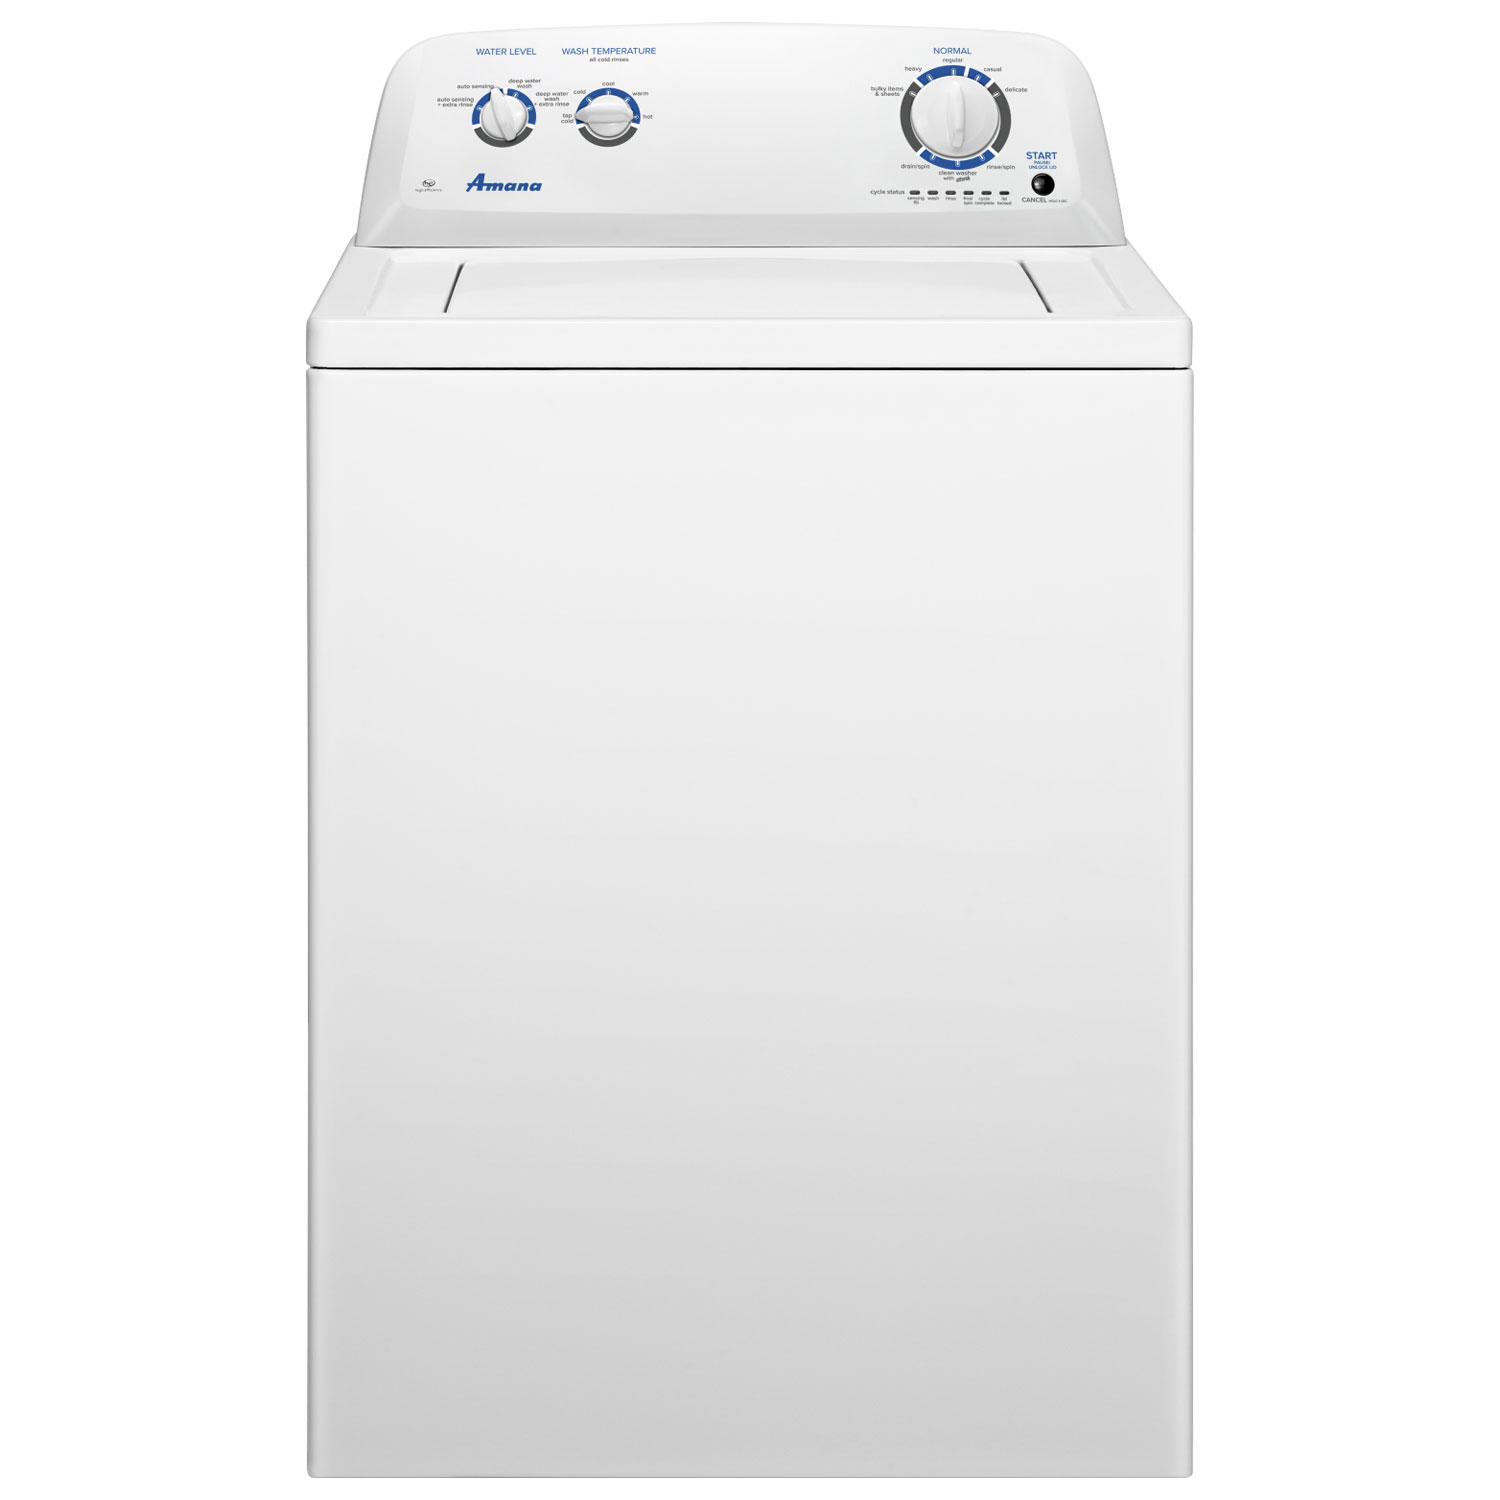 Amana 4 0 Cu Ft Top Load Washer NTW4516FW White Washing